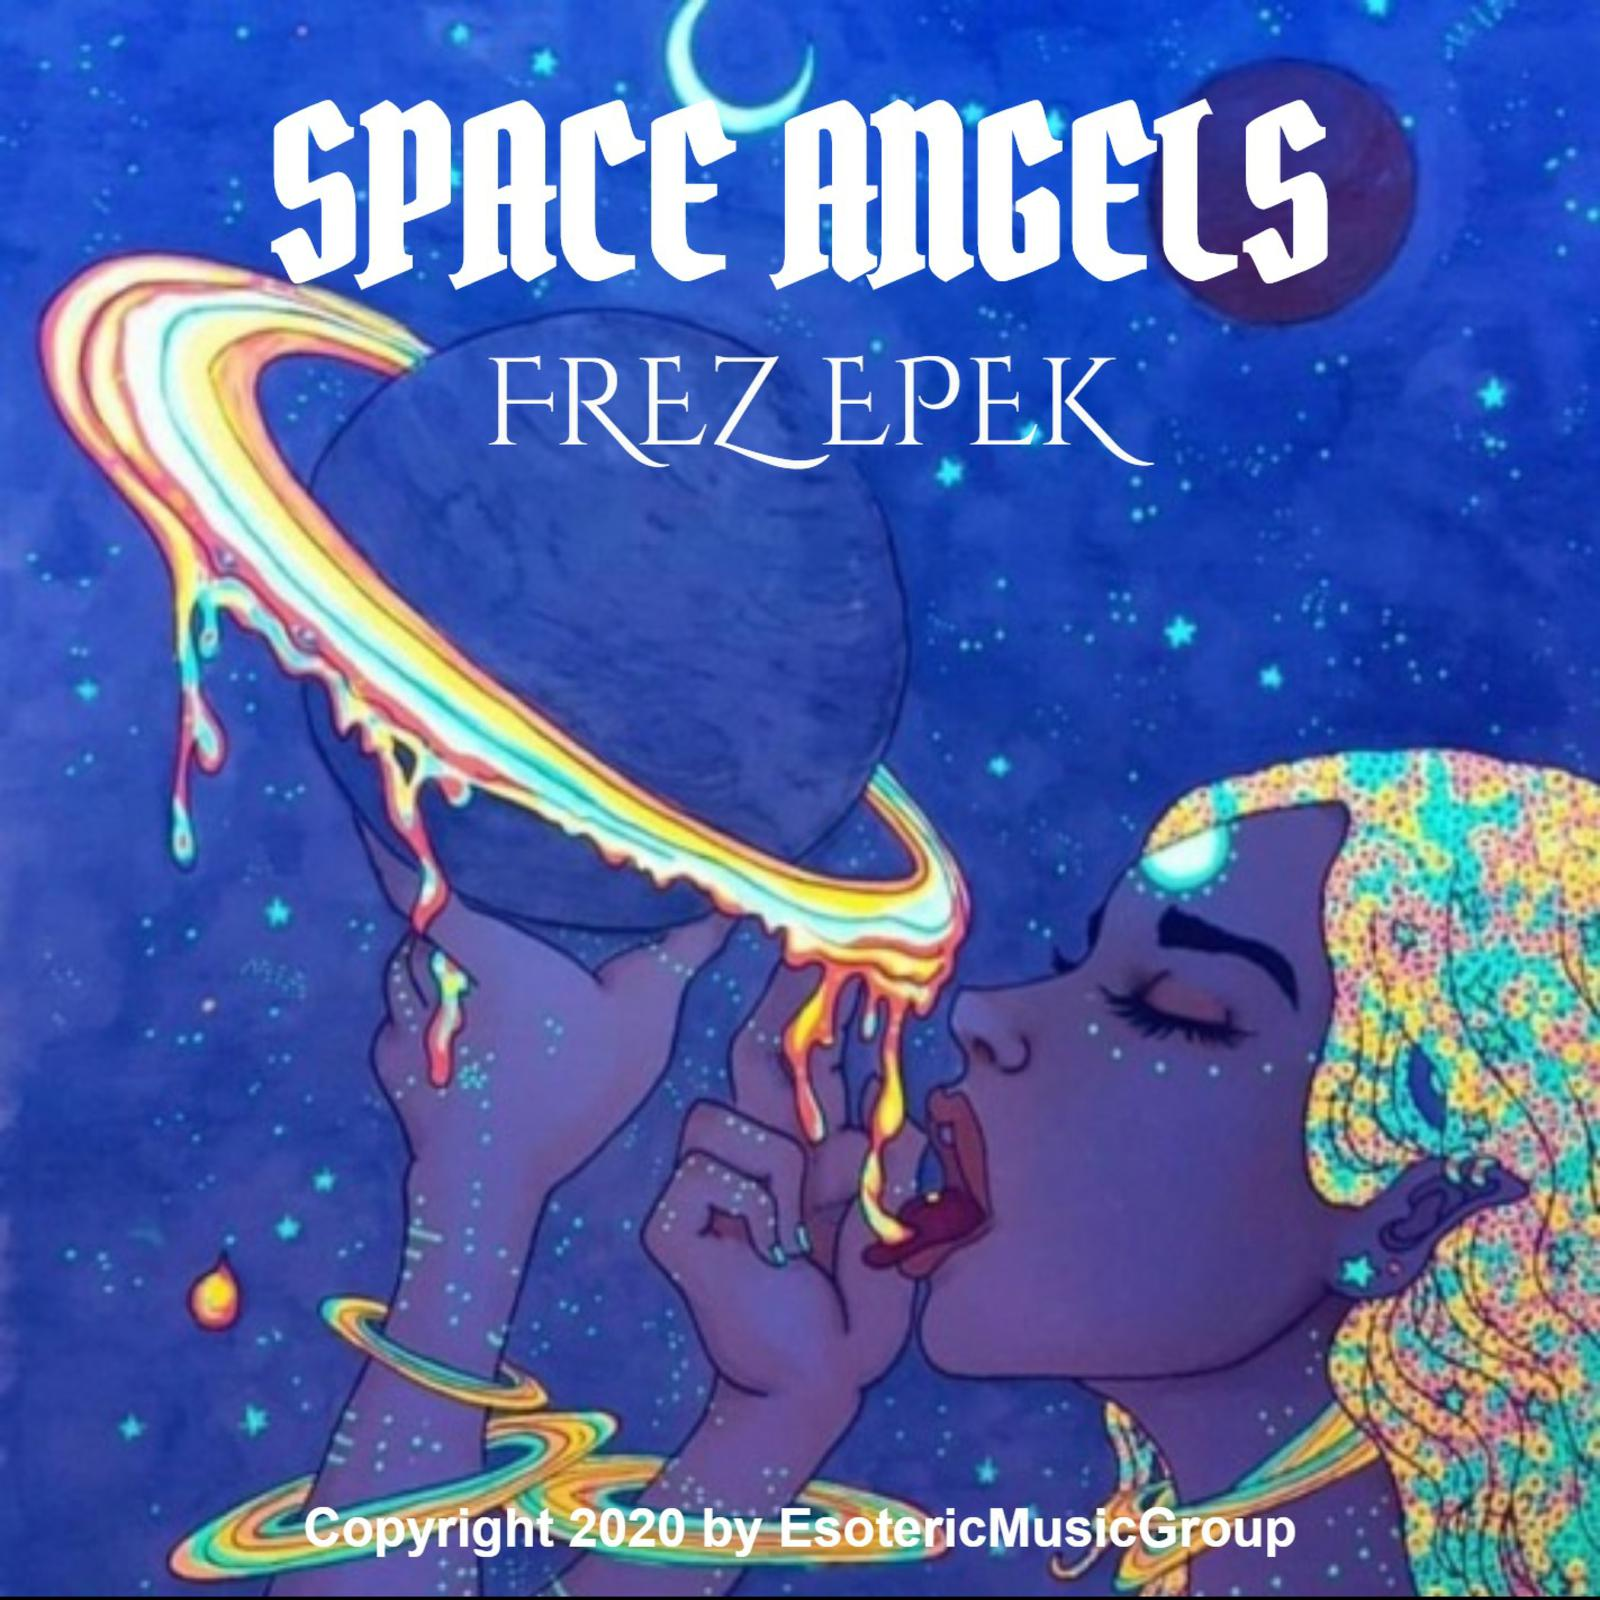 """SPACE ANGELS"" prt1 By FREZ EPEK digital download track  9 Esoterica"